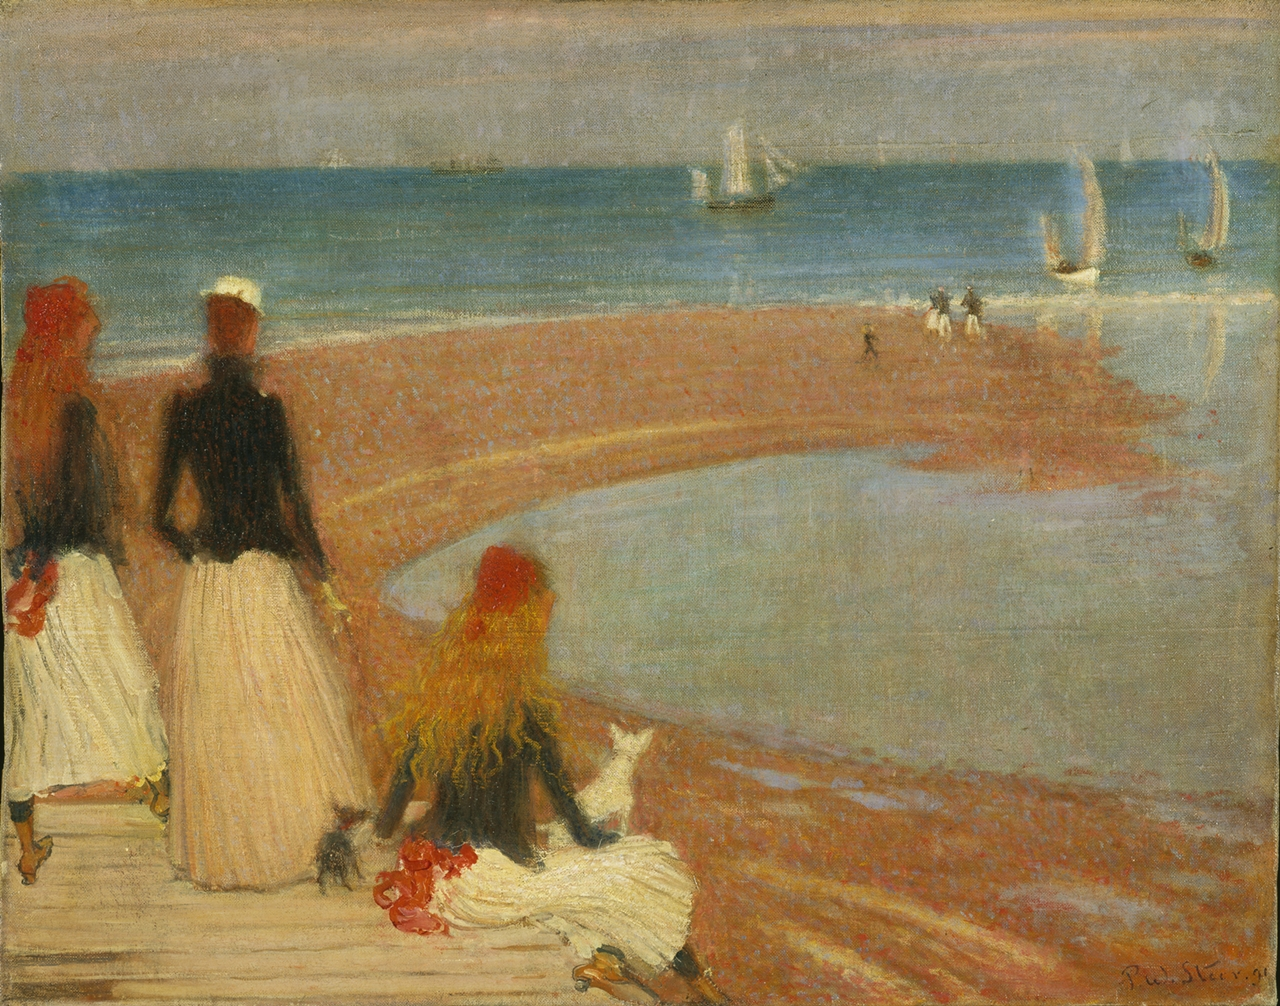 Philip Wilson Steer, 'The Beach at Walberswick' image